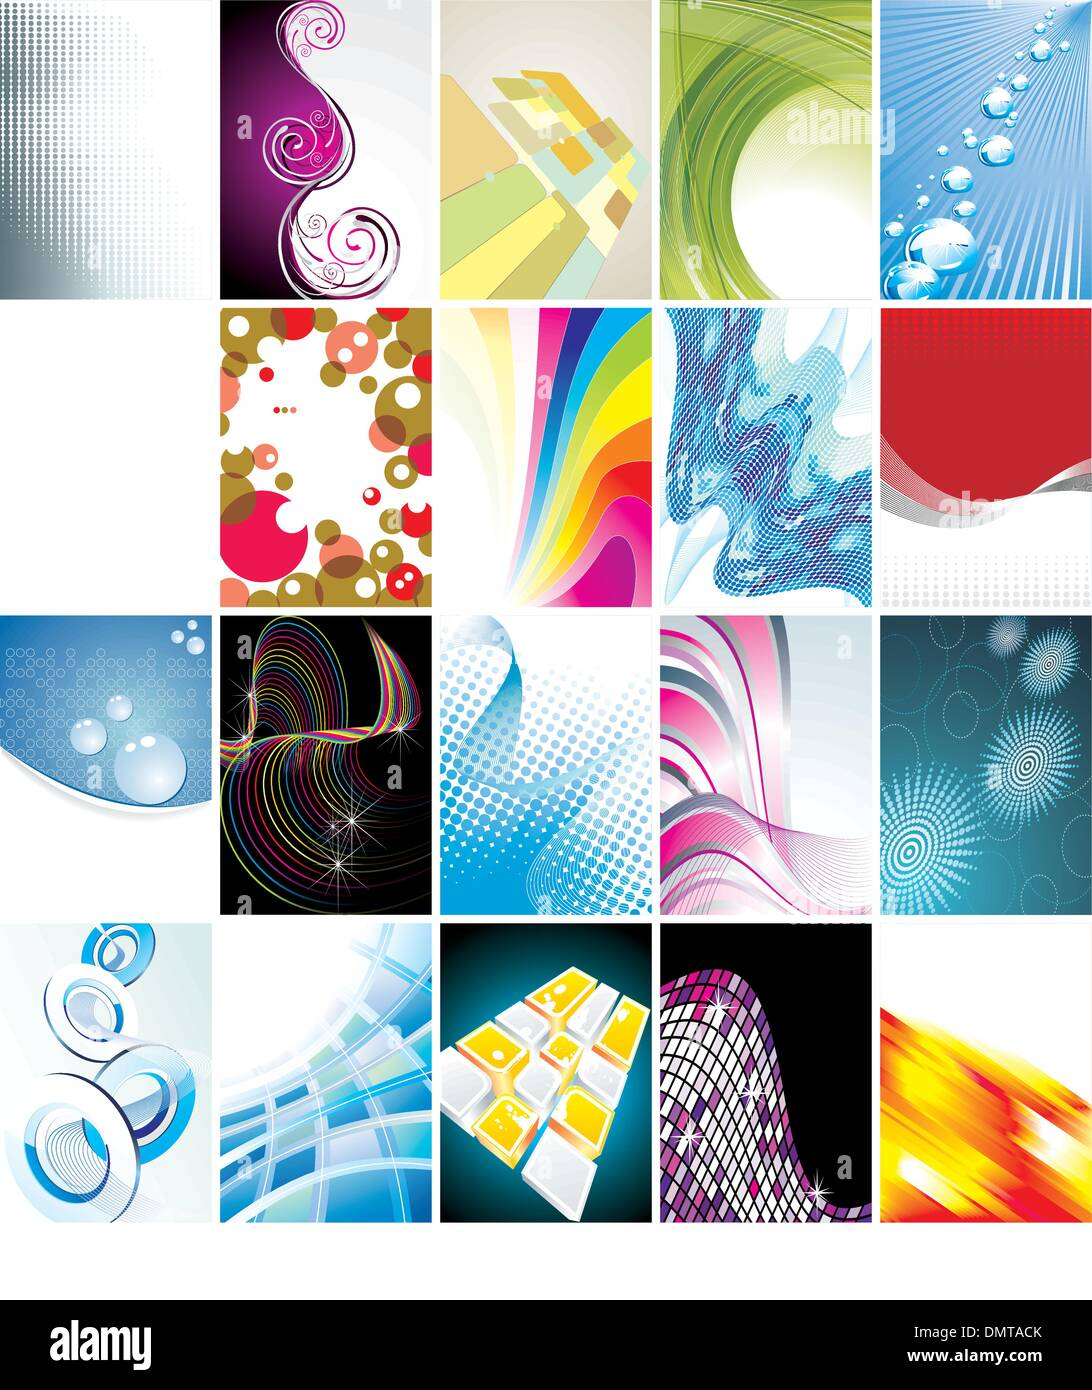 Business Card Collection Stock Vector Art & Illustration, Vector ...